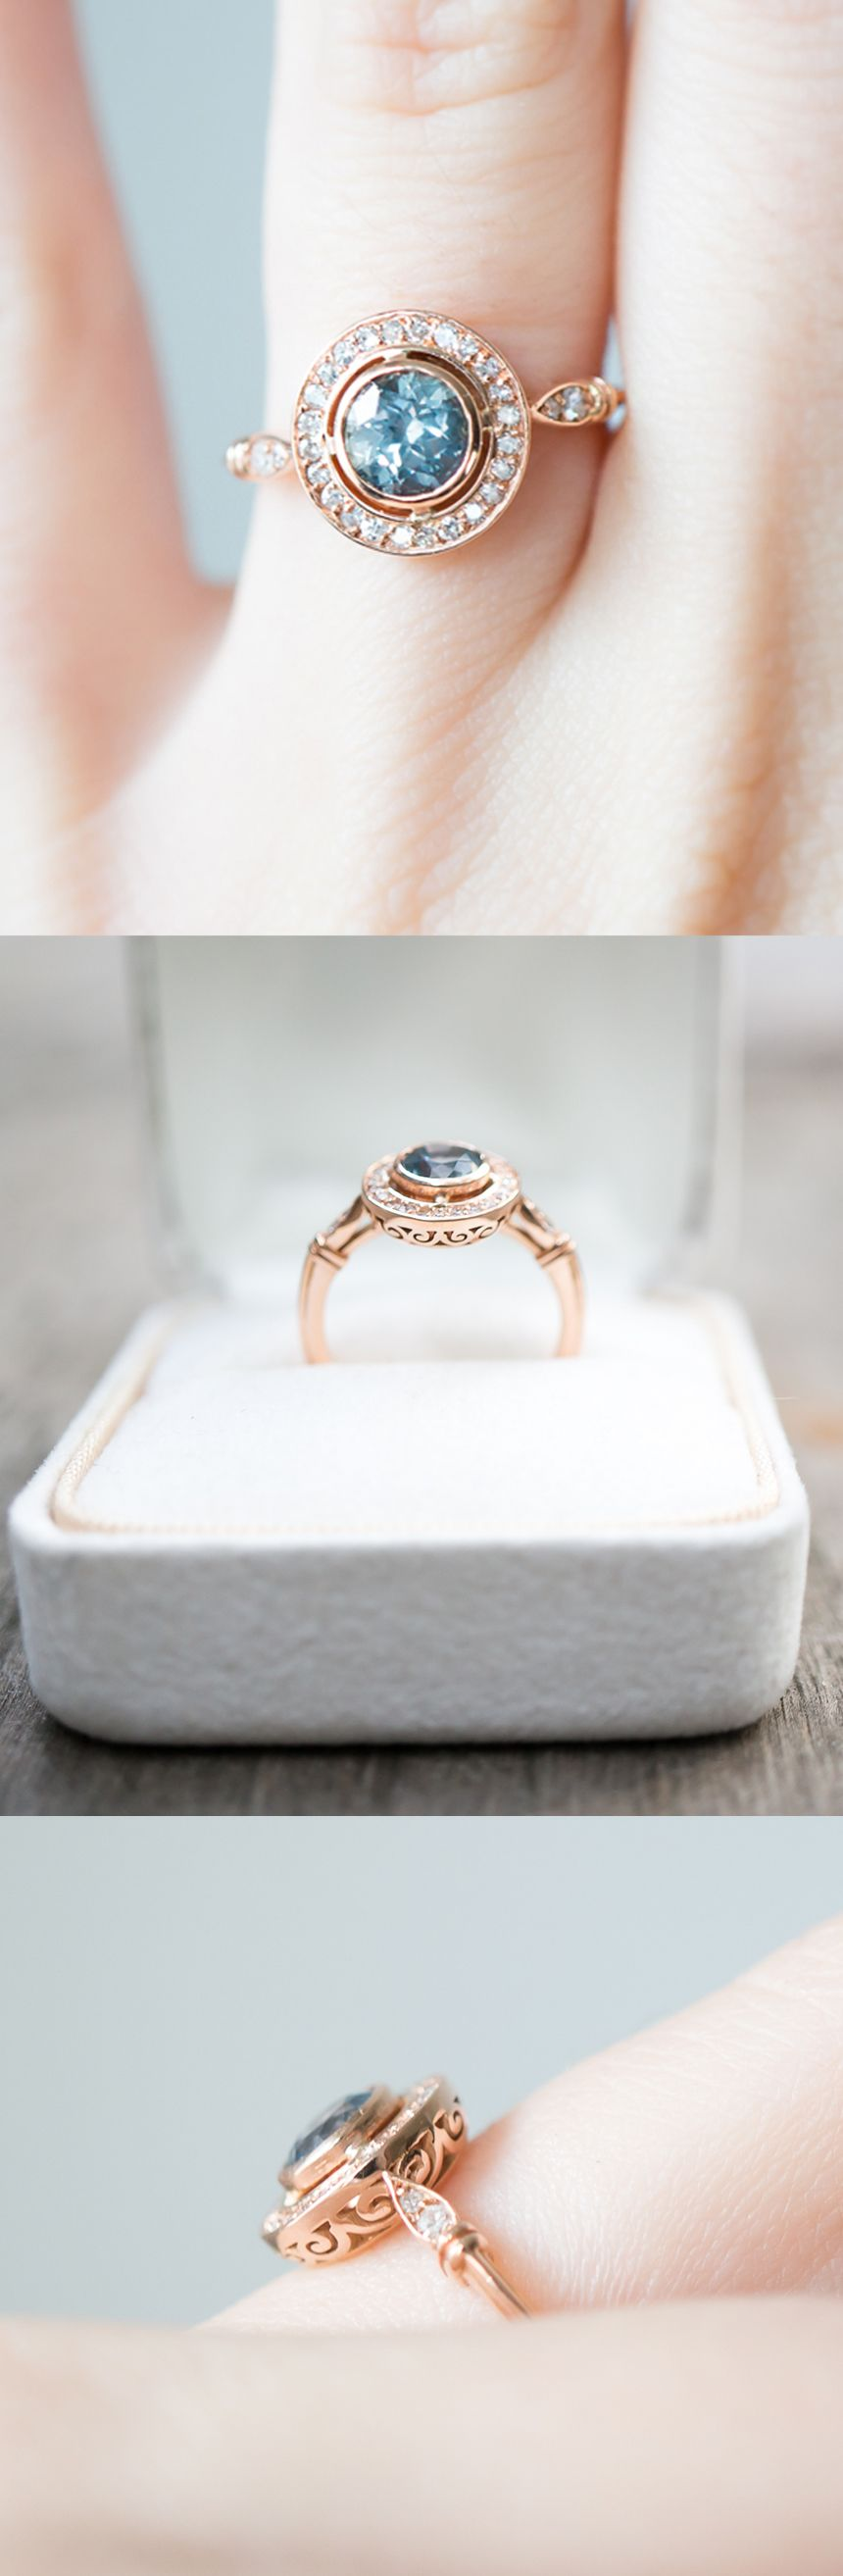 A detailed Halo engagement ring with a light blue sapphire and 28